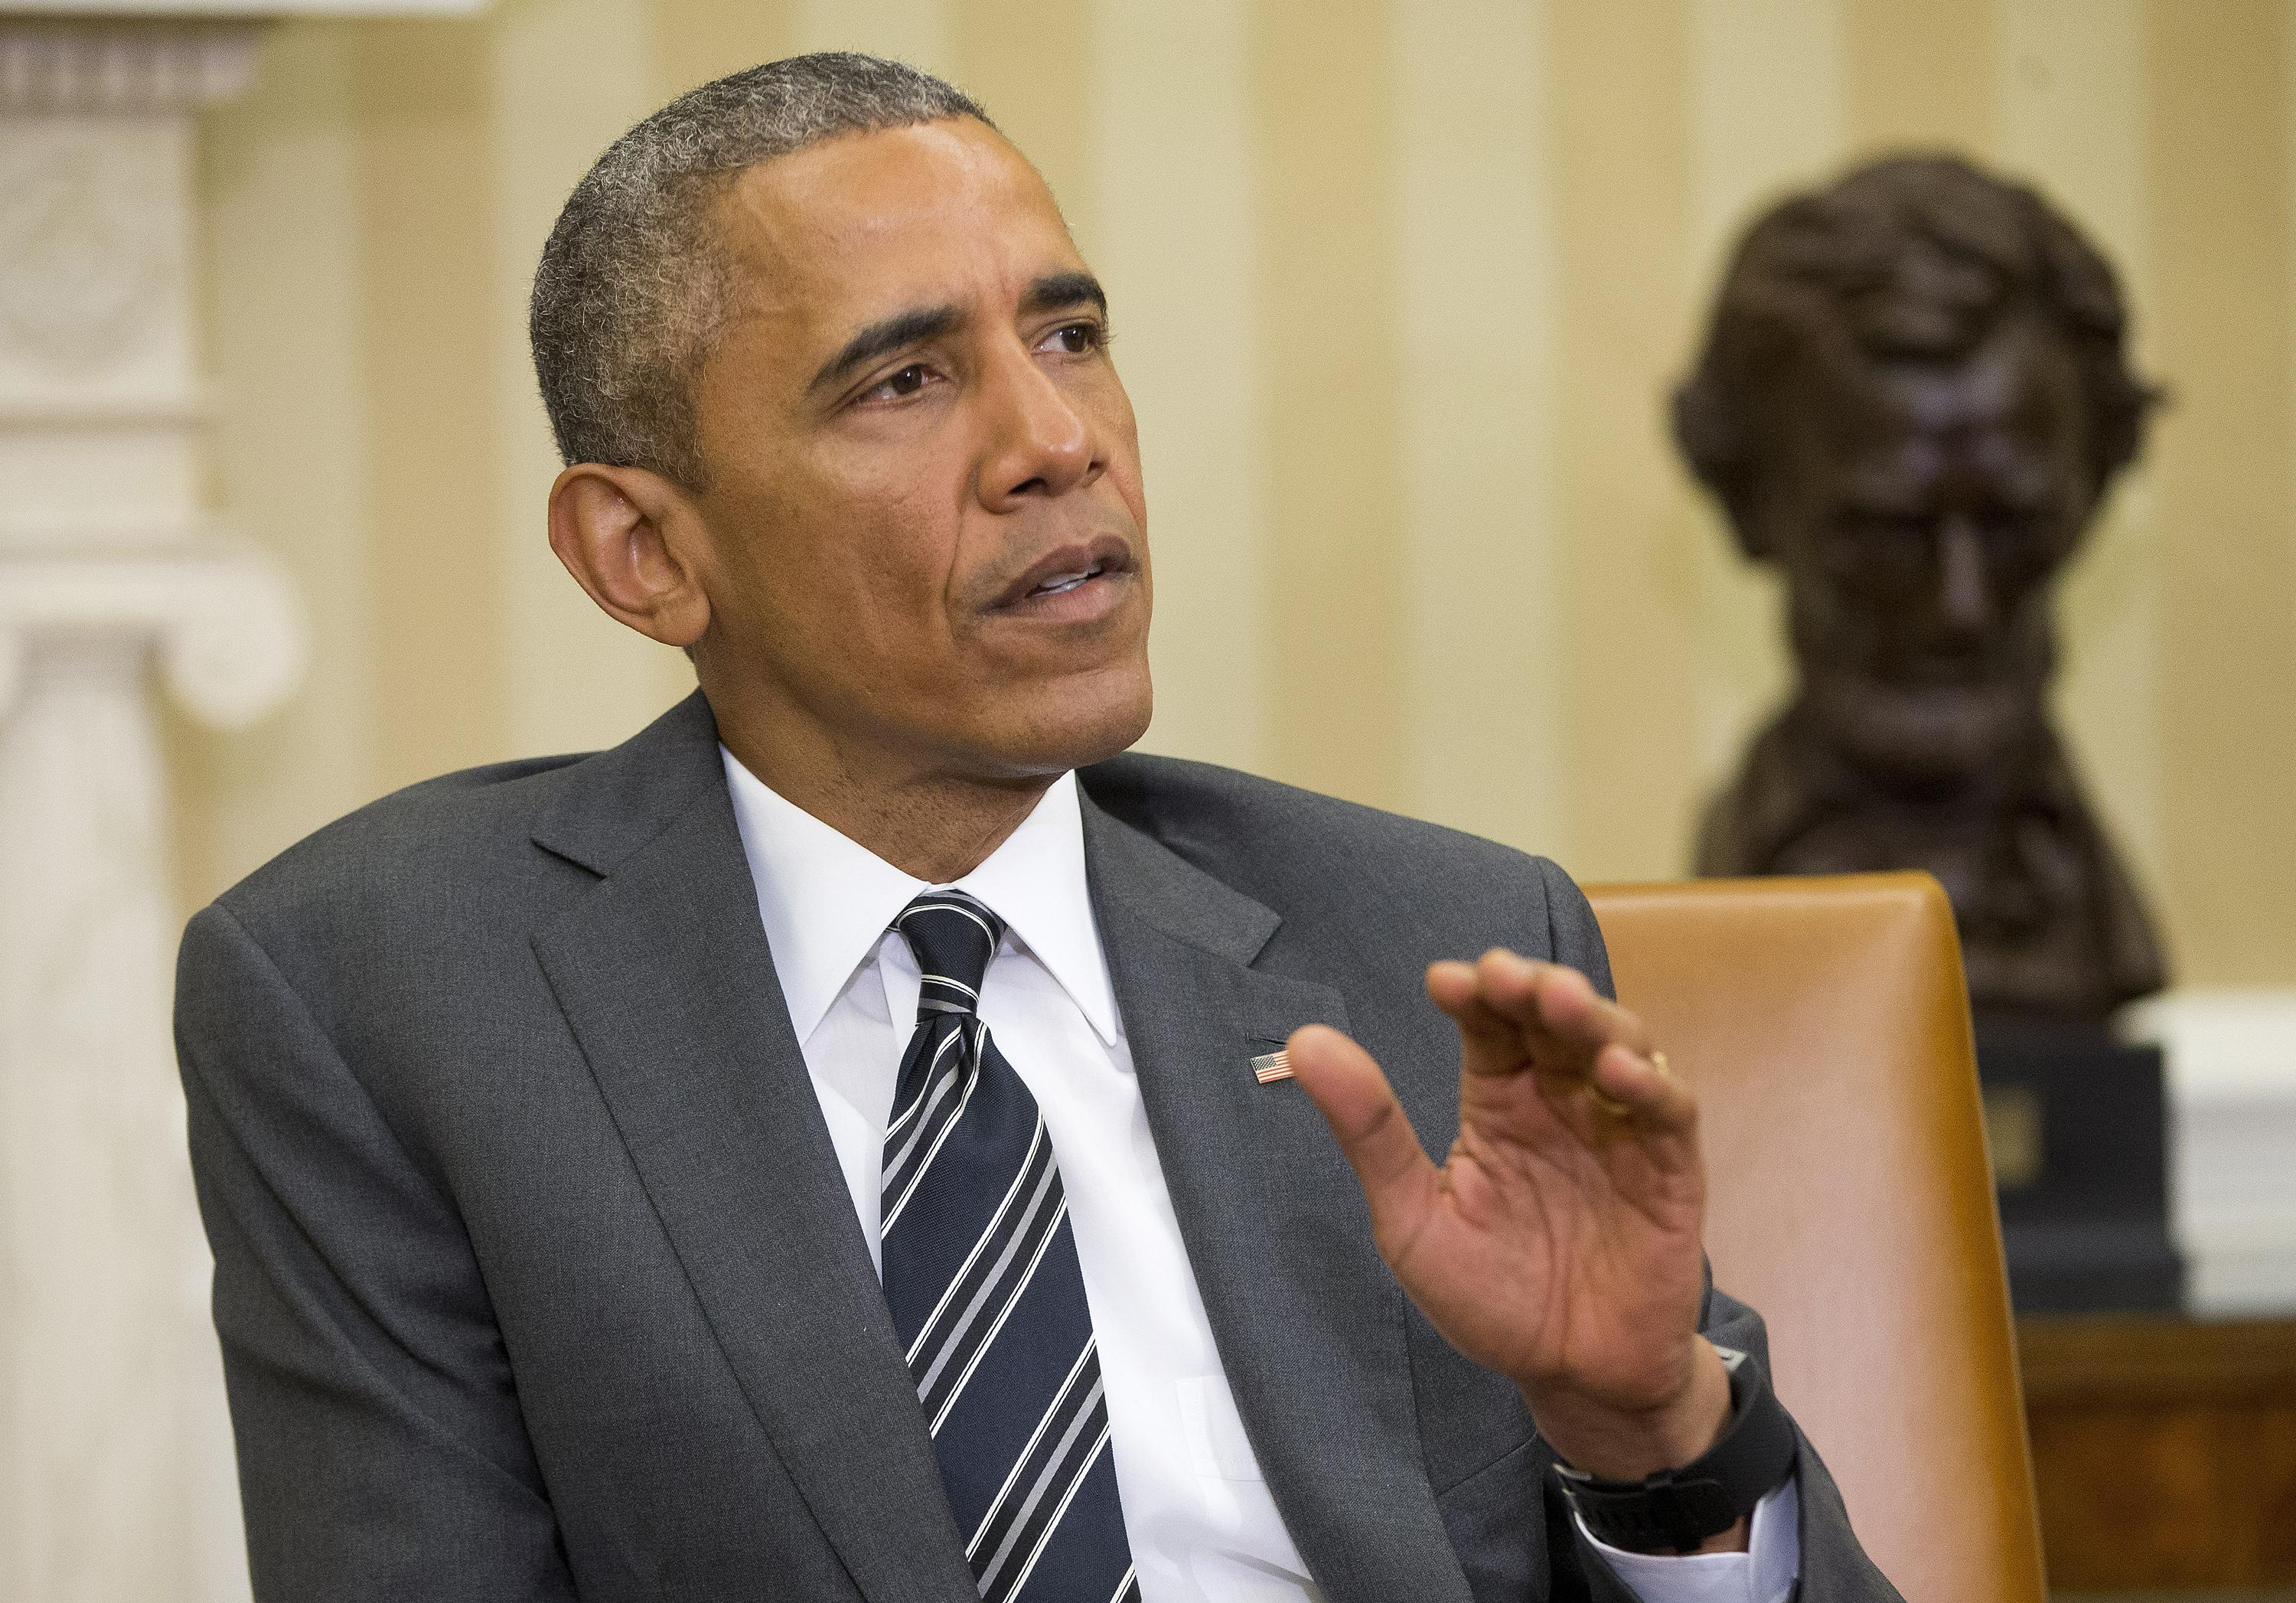 Obama's trade agenda faces tough battle heading into House